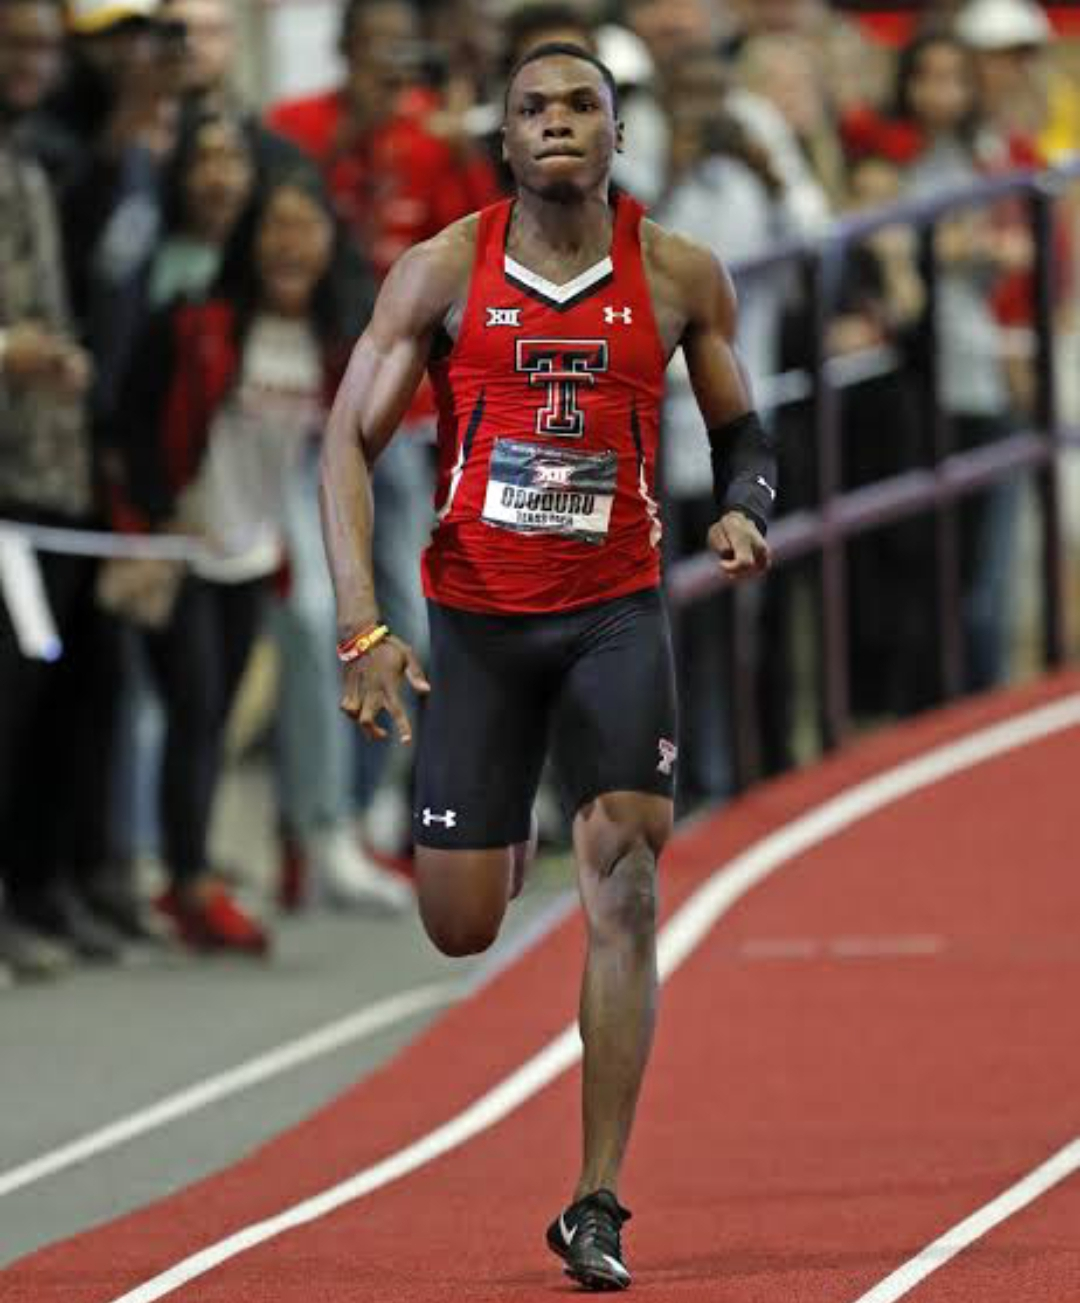 Oduduru: I worked For My 100/200m Feats At Michael Johnson Invitational